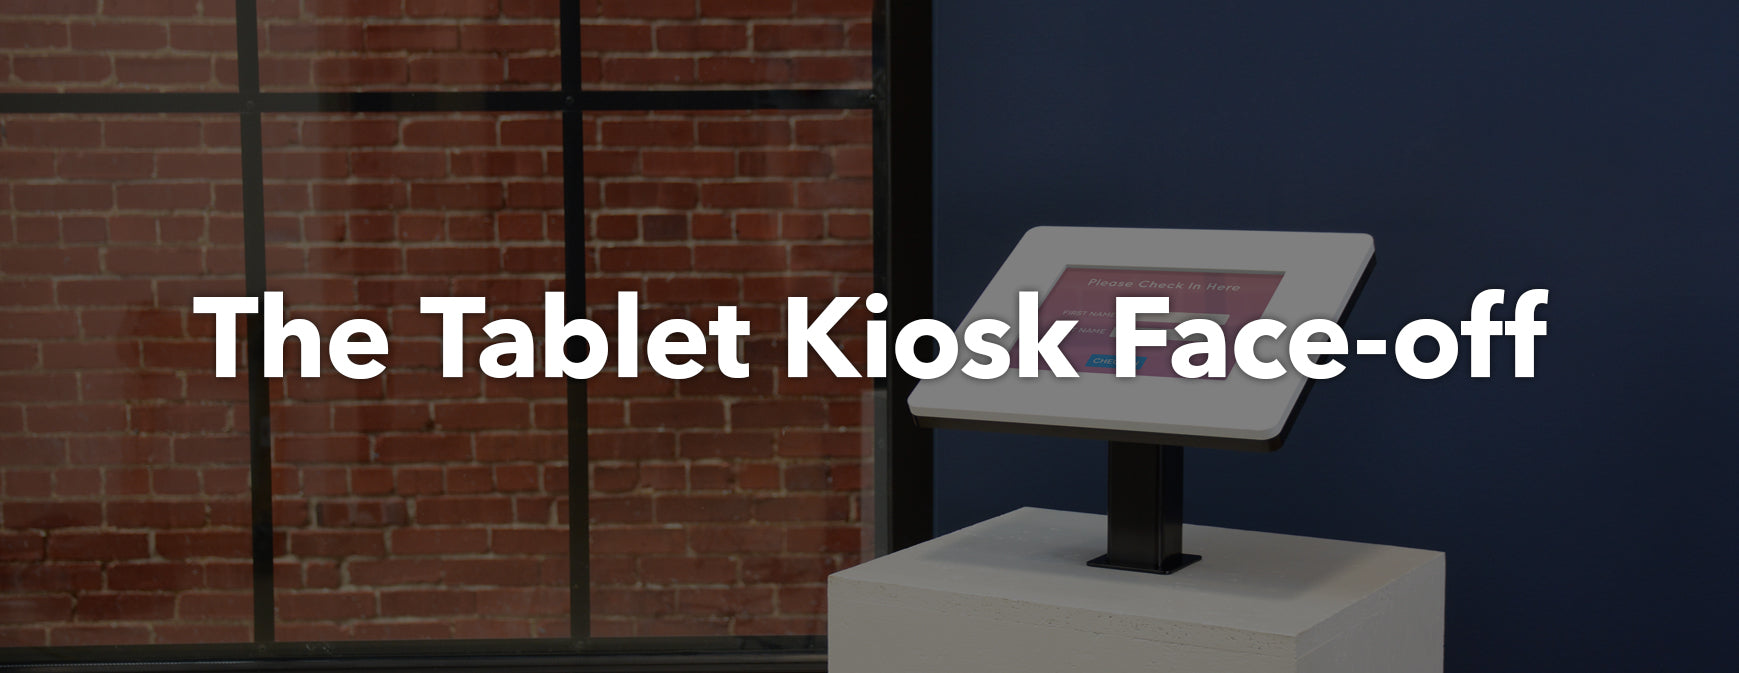 The Tablet Kiosk Face-off